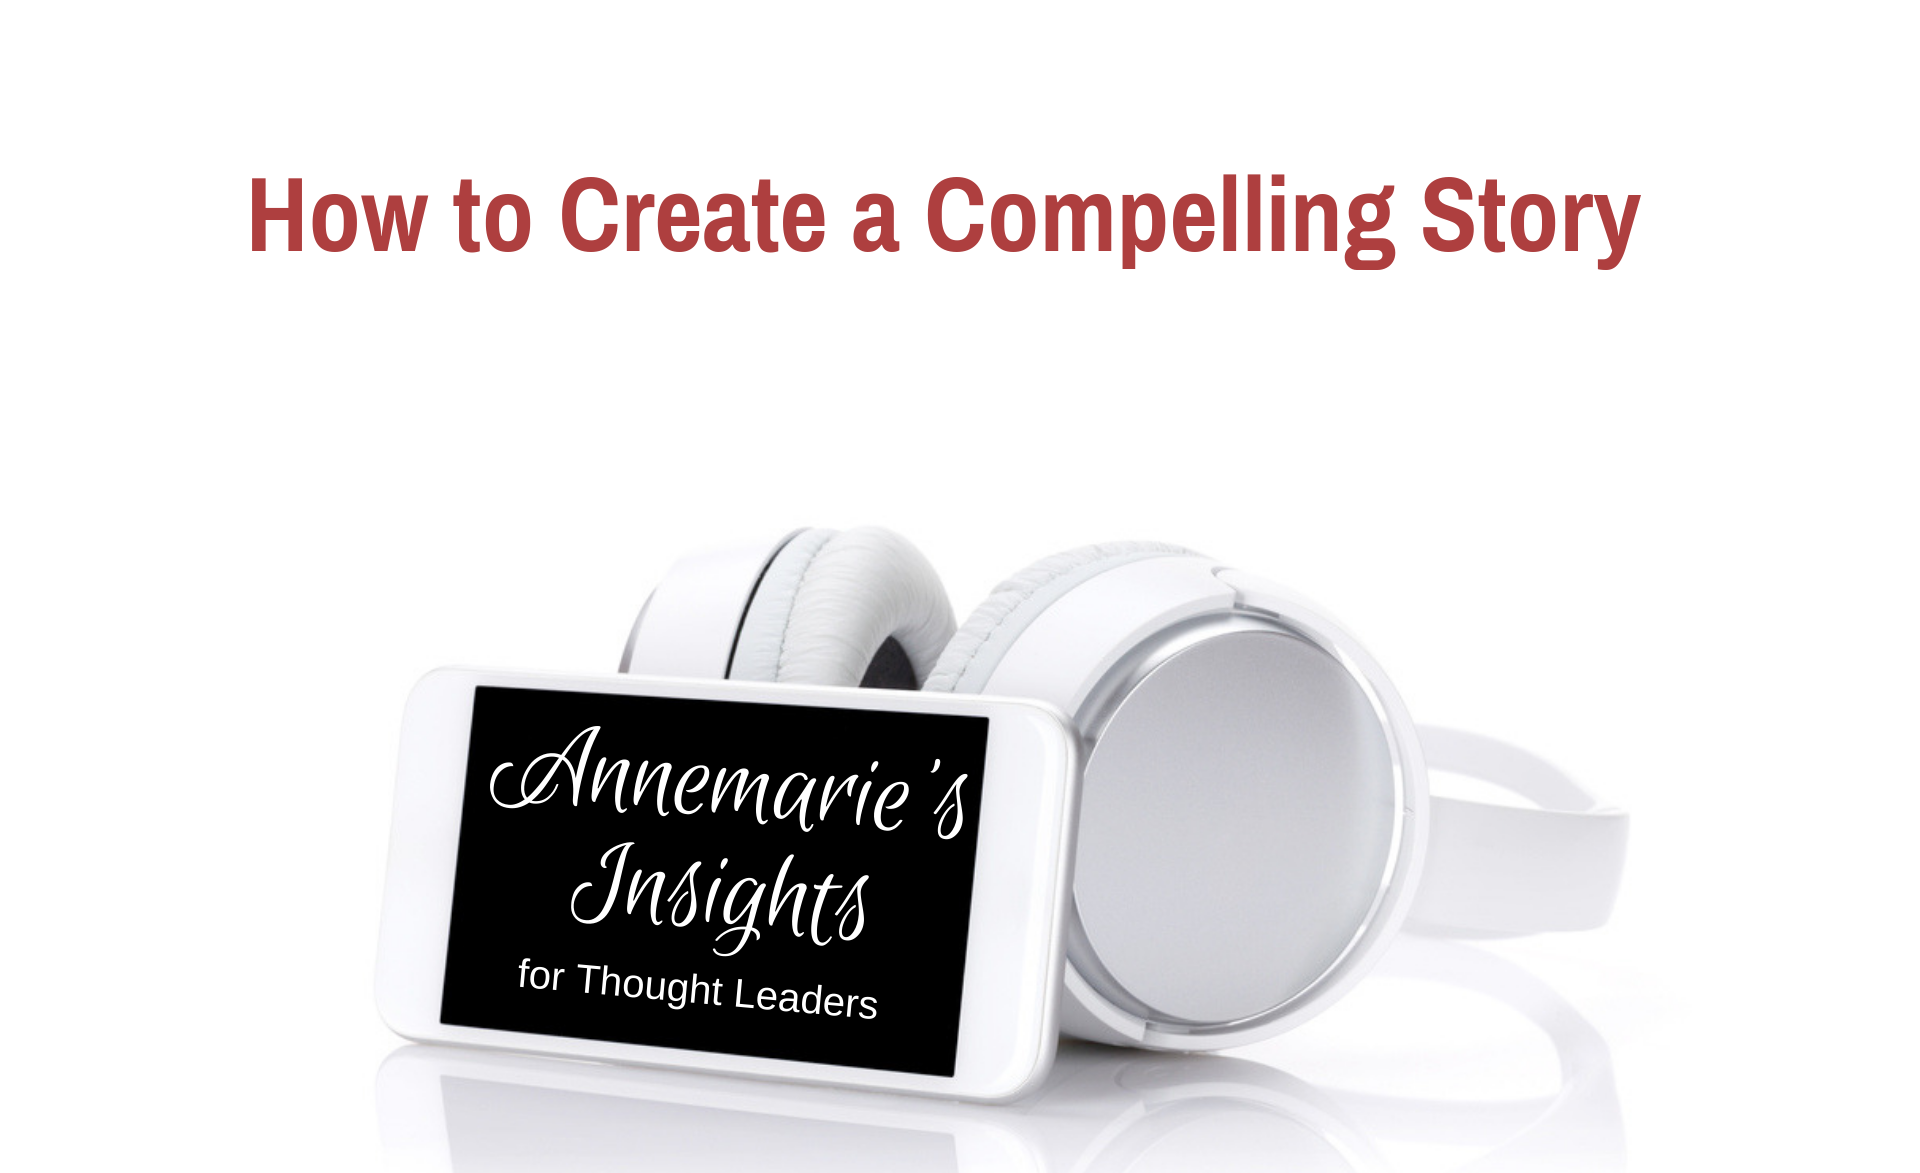 How to Create a Compelling Story